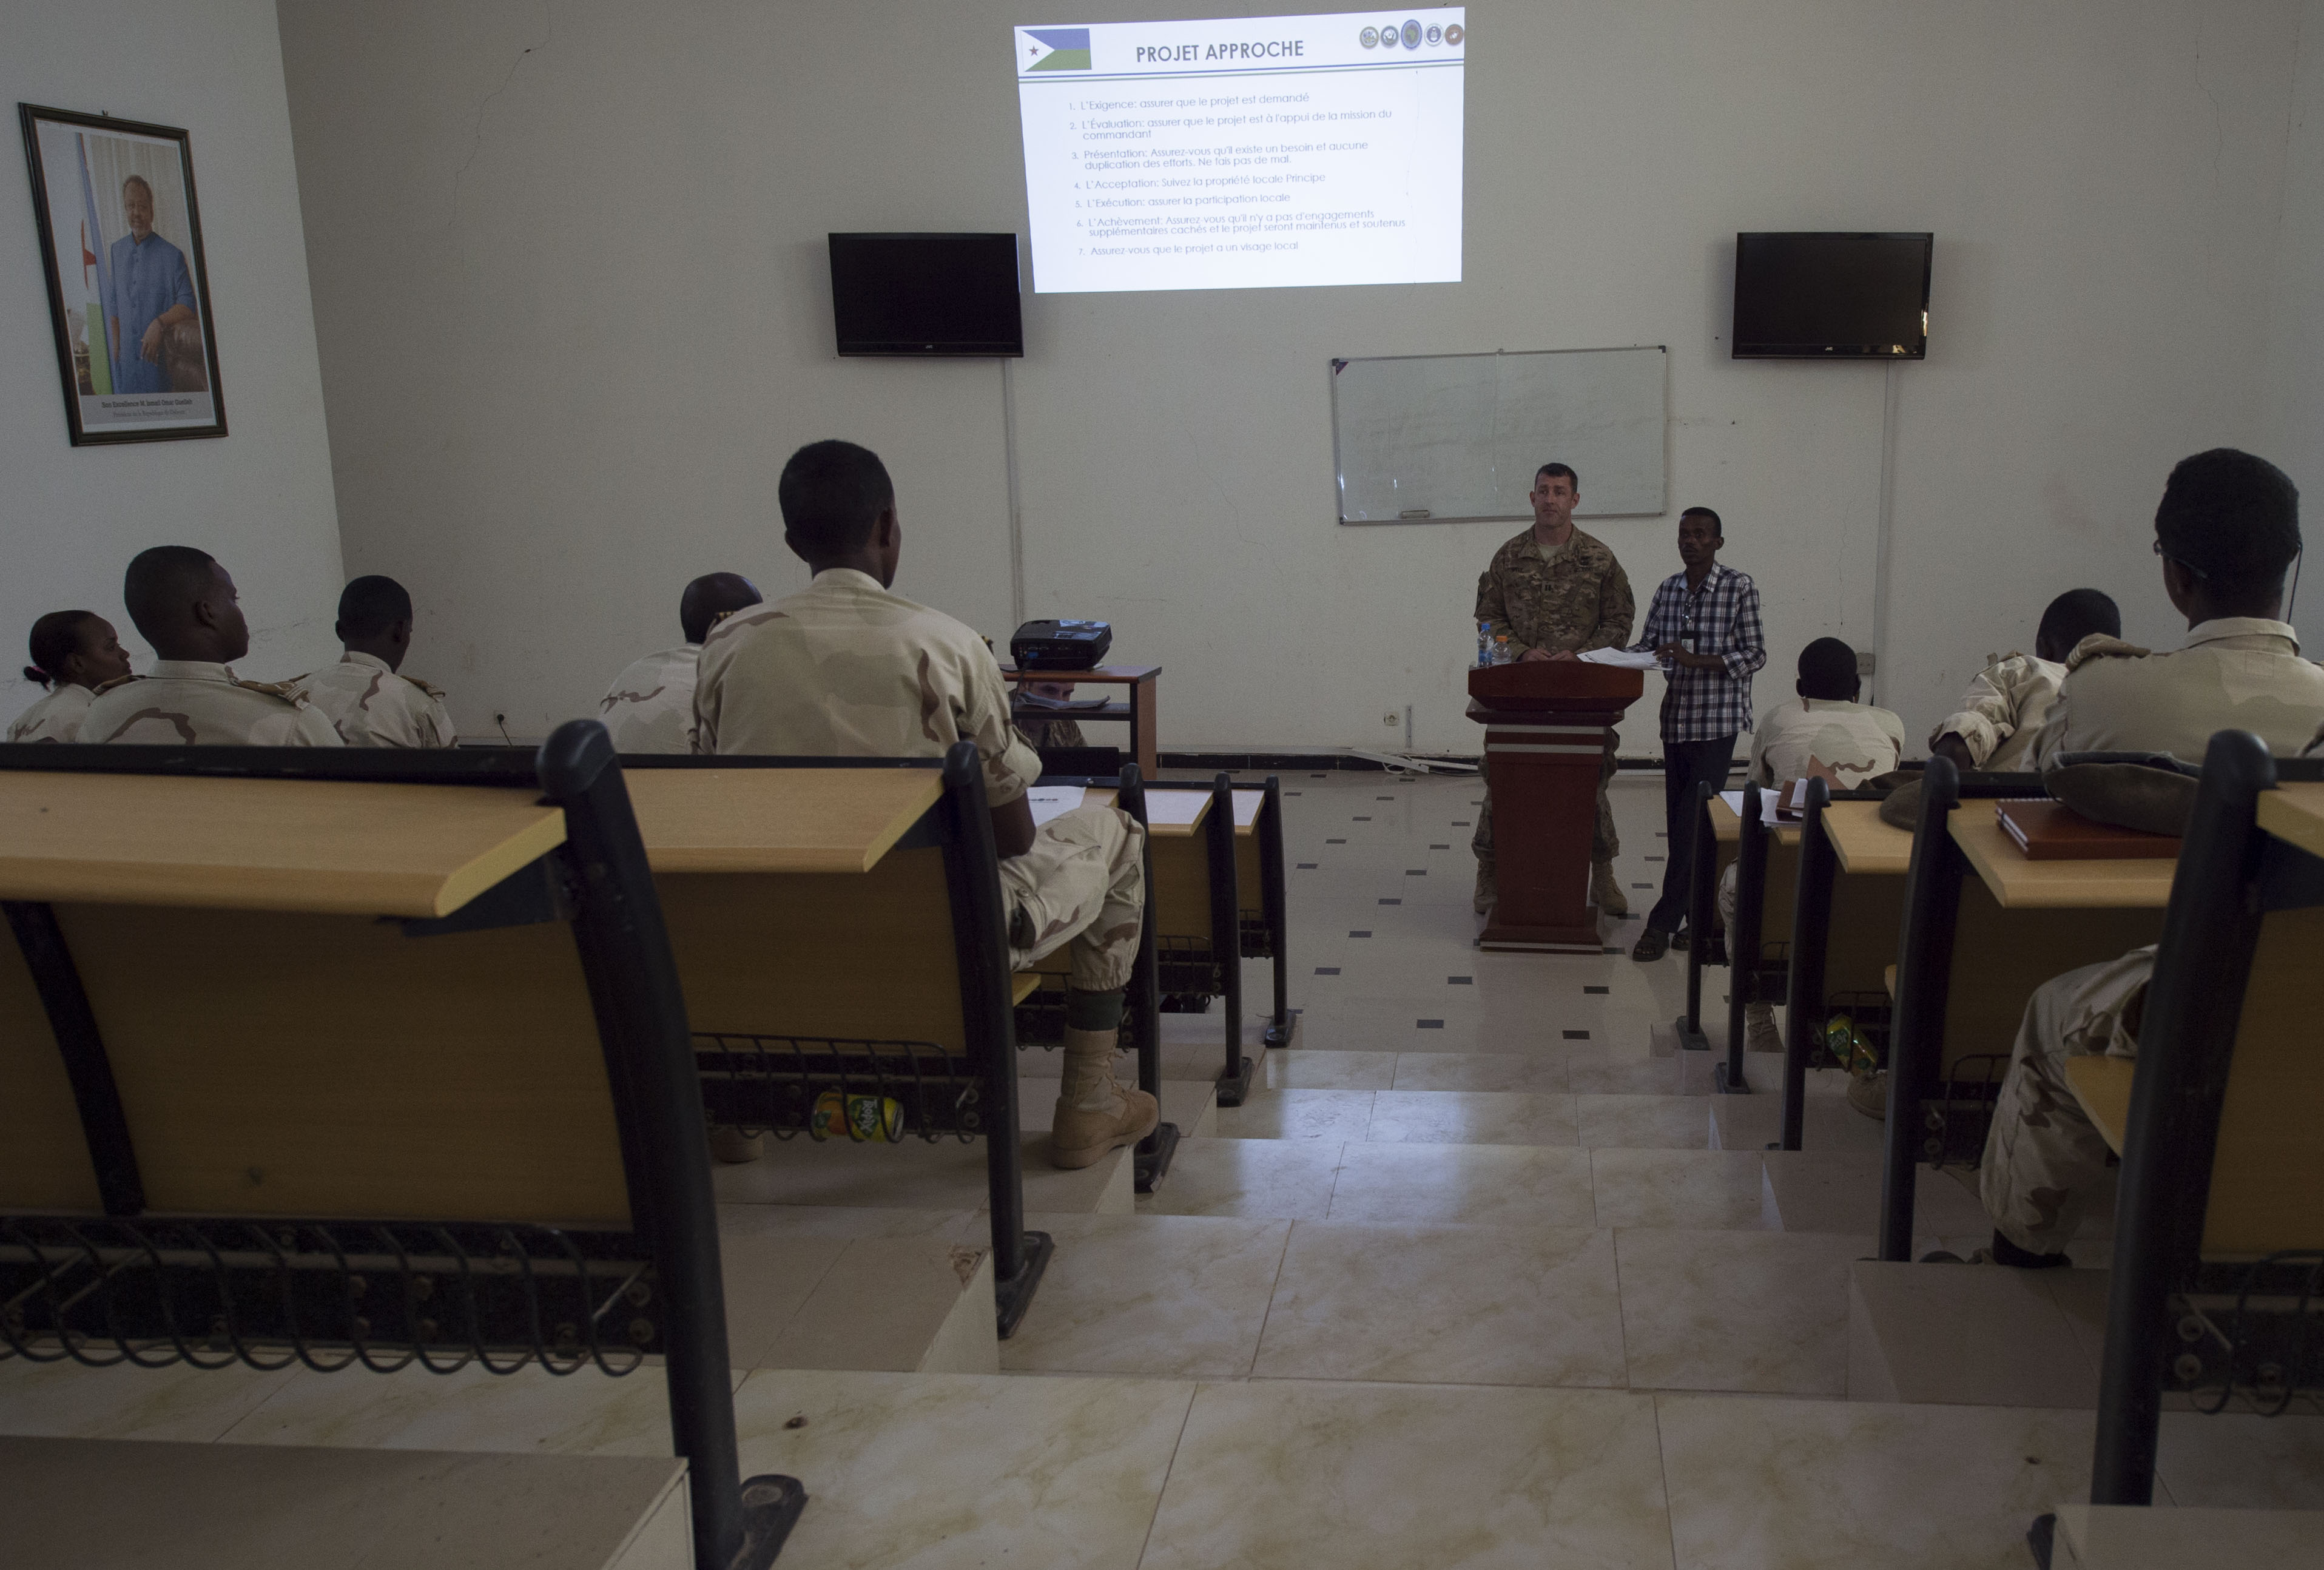 U.S. Army Capt. Scott Wyly, 403rd Civil Affairs Battalion team leader, teaches Djibouti's Arta Interservices Military Academy cadets how to interact with host nation civilians in areas of conflict May 17, 2016, at Arta, Djibouti.  The third-year cadets are scheduled to graduate in September and have the possibility of deploying to Somalia after a year. (U.S. Air Force photo by Staff Sgt. Eric Summers Jr.)